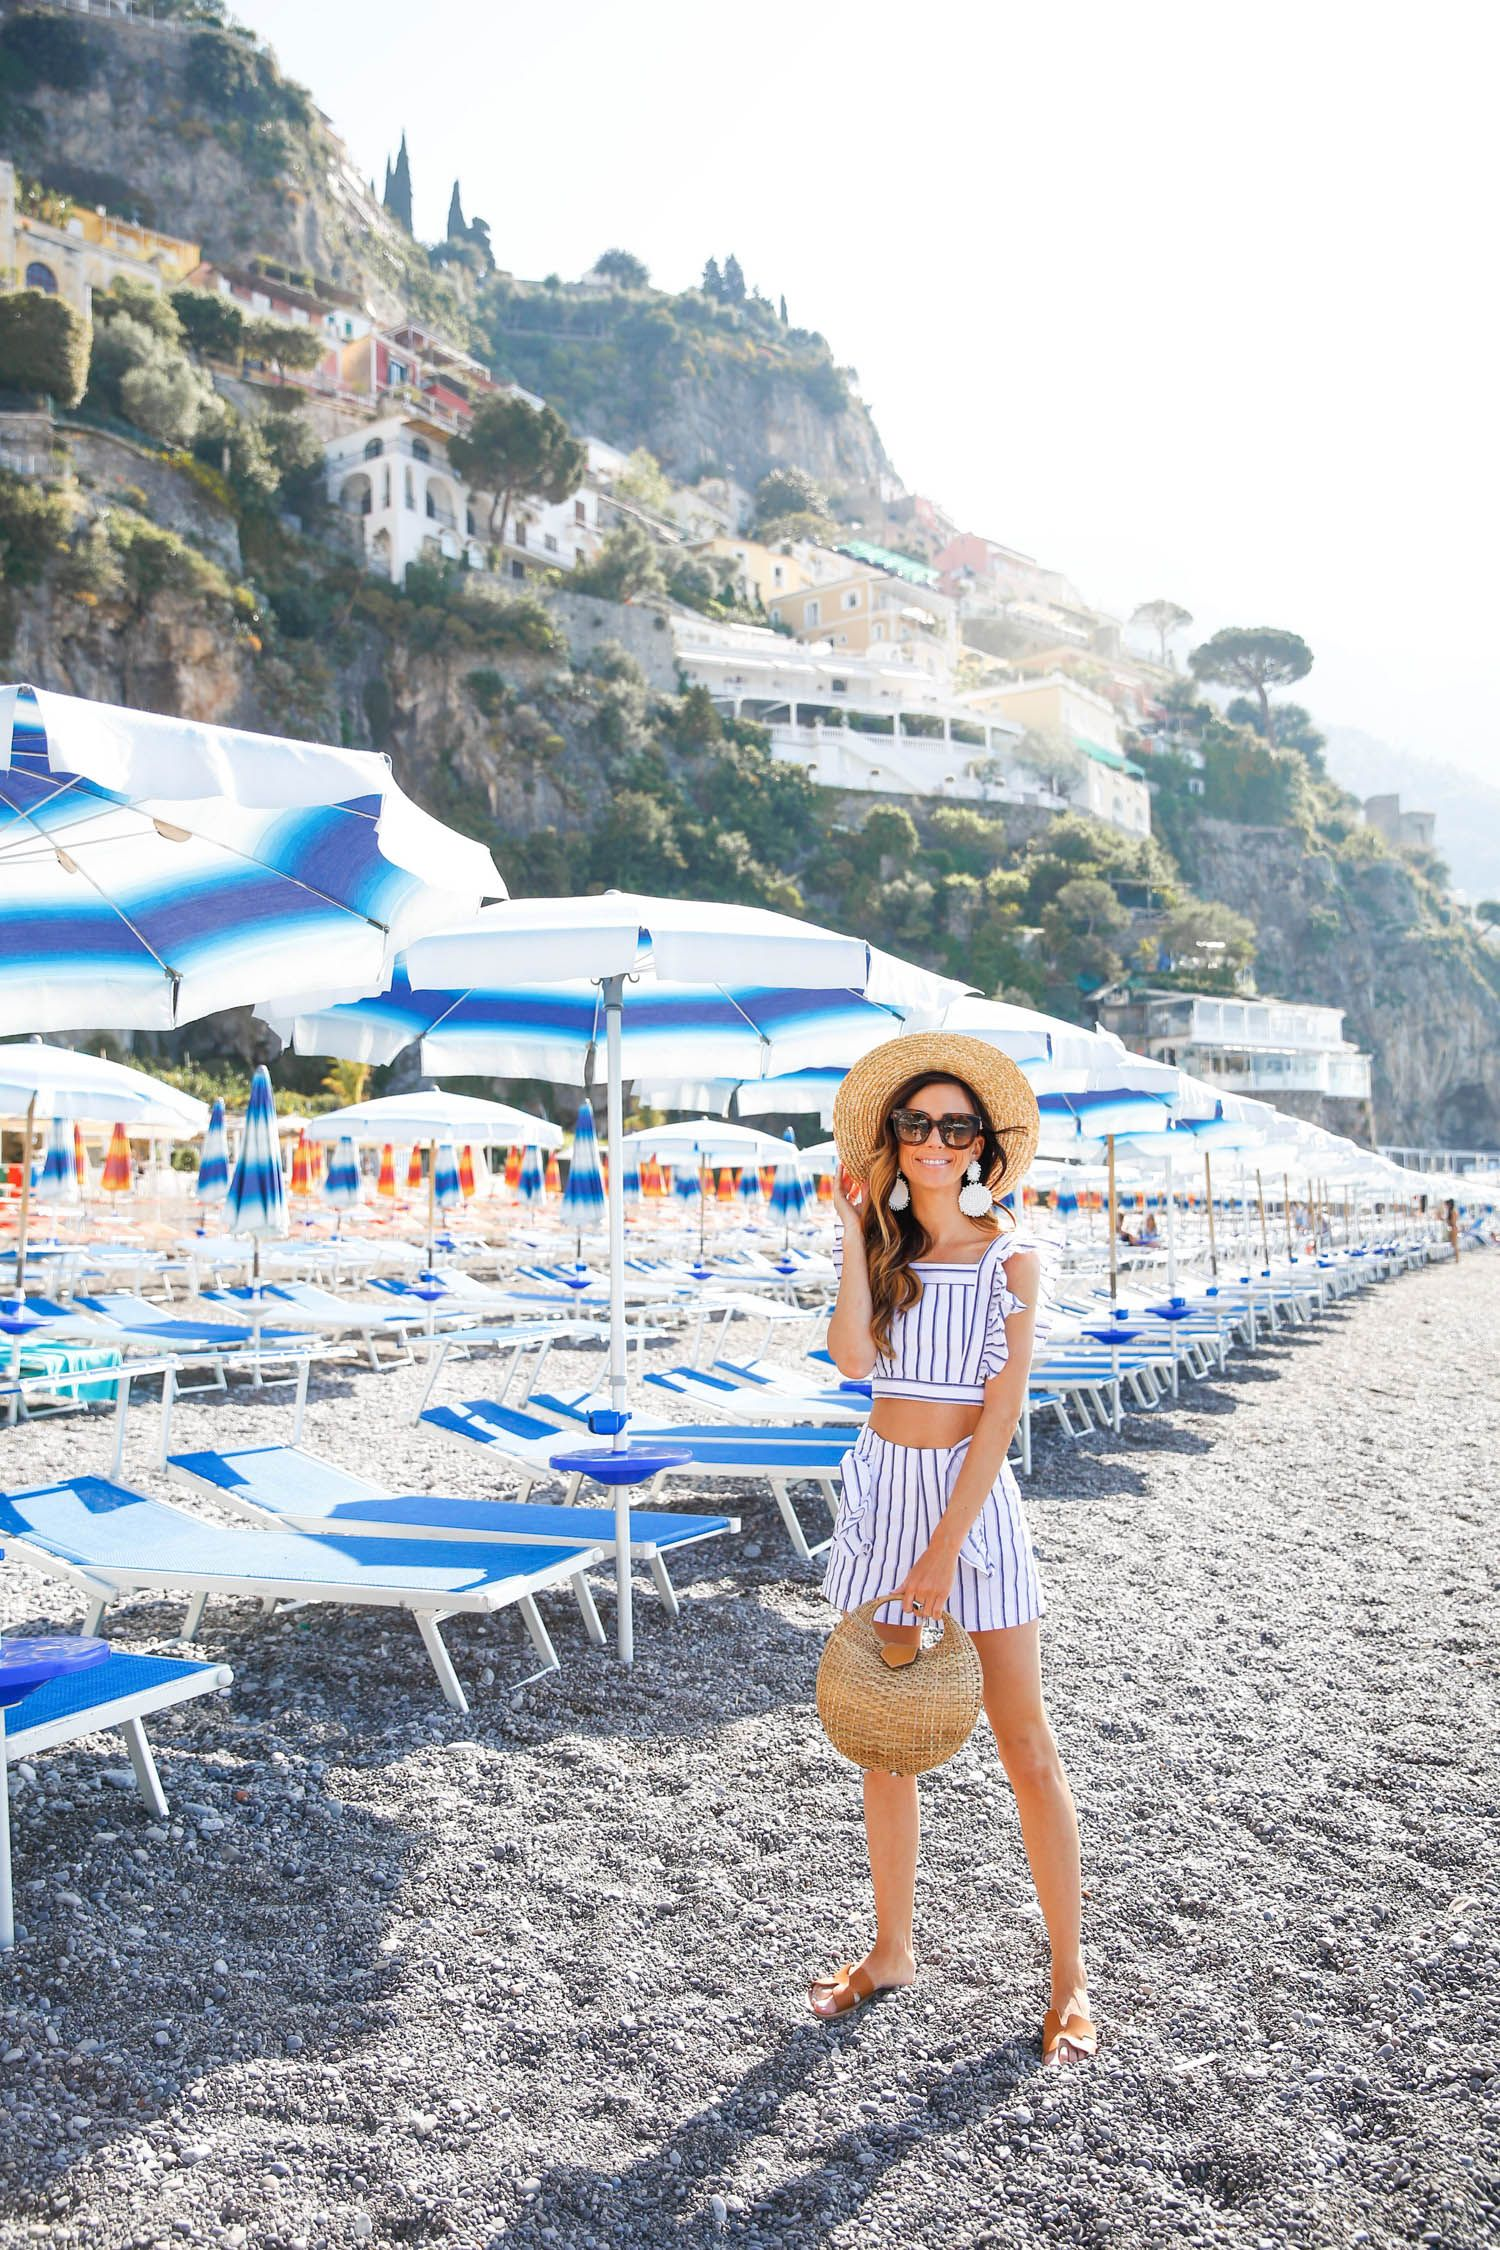 Beach Umbrellas In Positano College Outfits Fashion 4th Of July Date